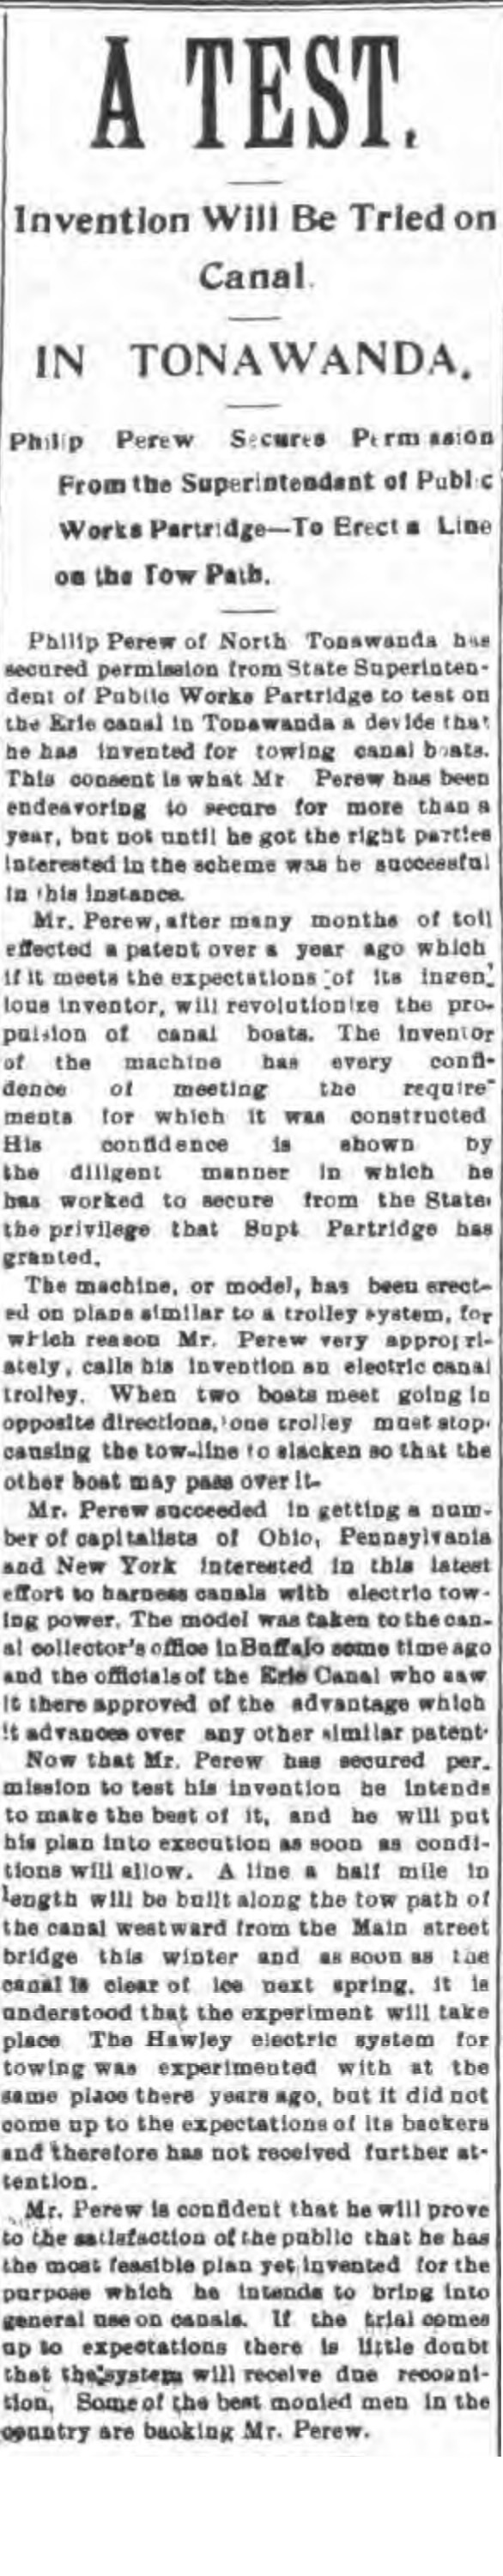 A test, invention will be tried in canal, article (Tonawanda News, 1900-01-12).jpg